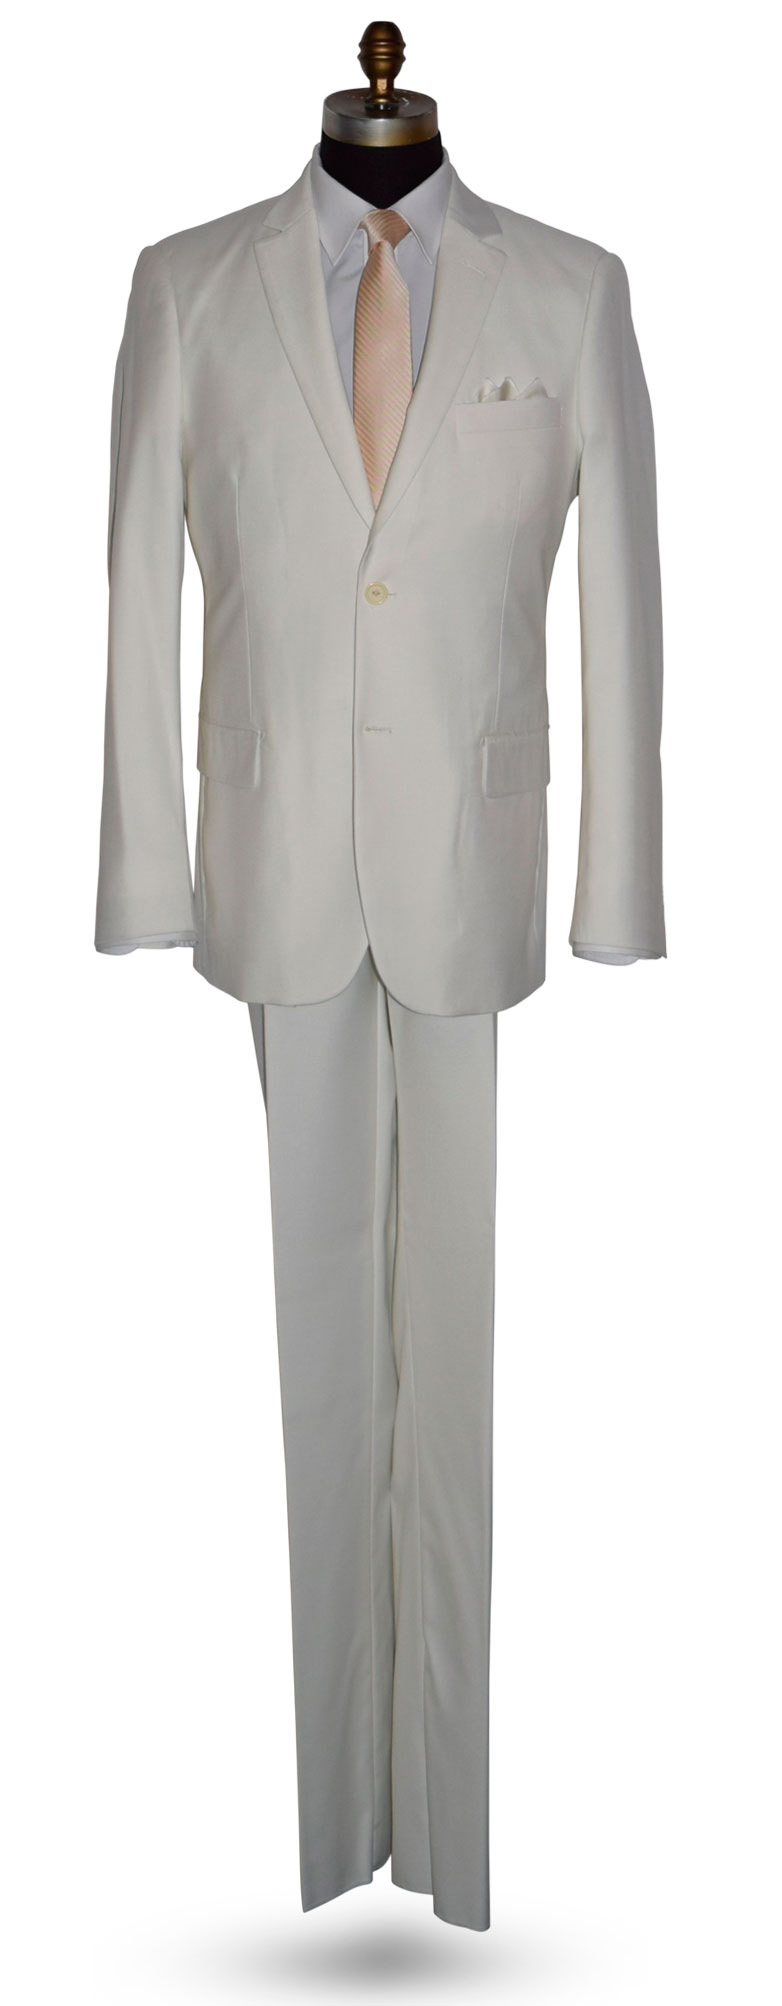 OFF-WHITE MENS MODERN FIT SUIT - COAT AND PANTS ONLY